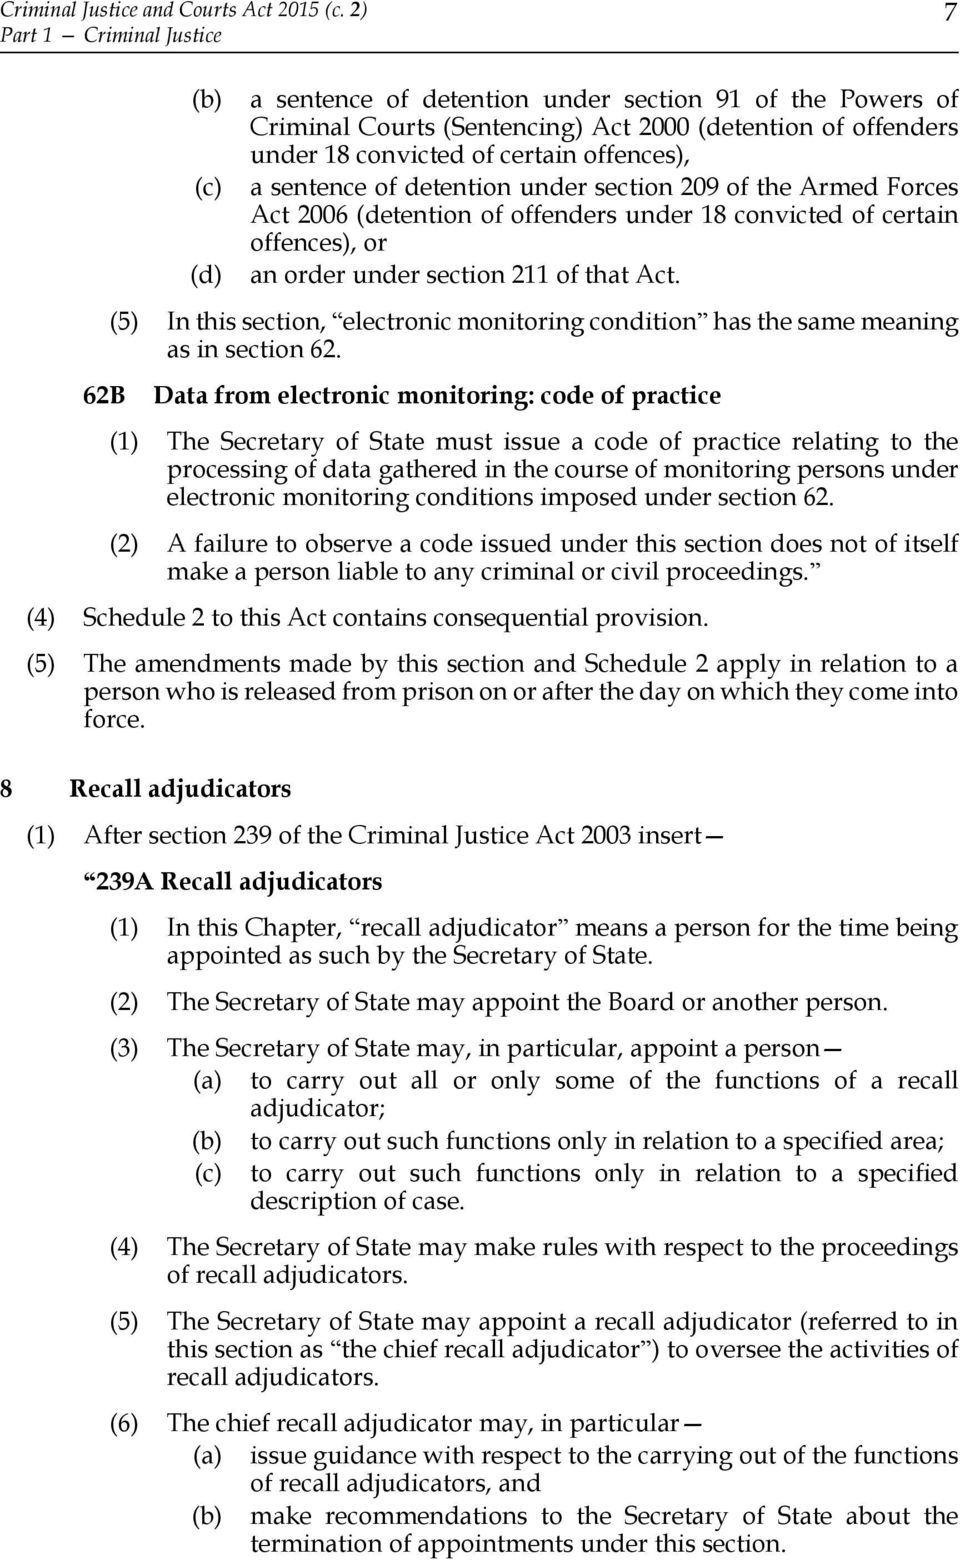 offences), a sentence of detention under section 209 of the Armed Forces Act 2006 (detention of offenders under 18 convicted of certain offences), or an order under section 211 of that Act.